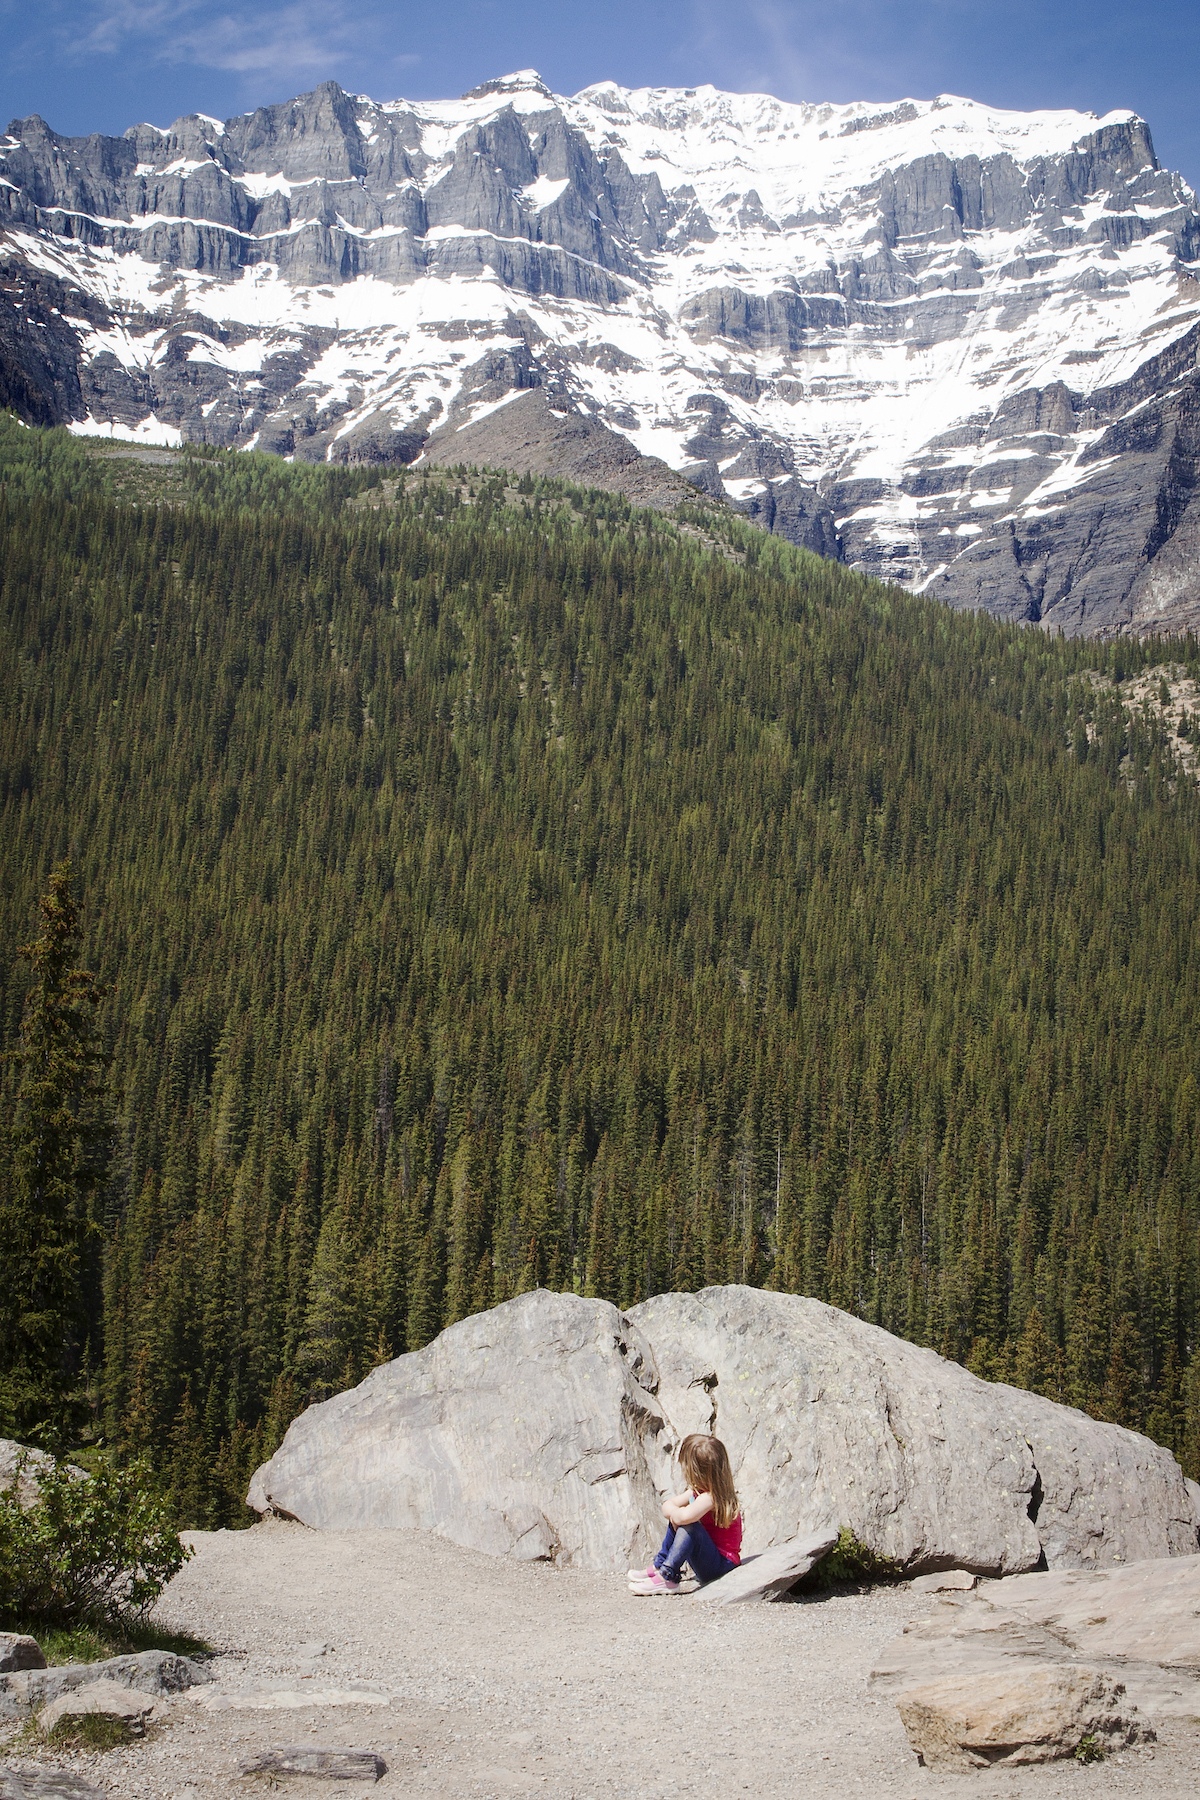 Hiking in Banff Canada on a beautiful spring day